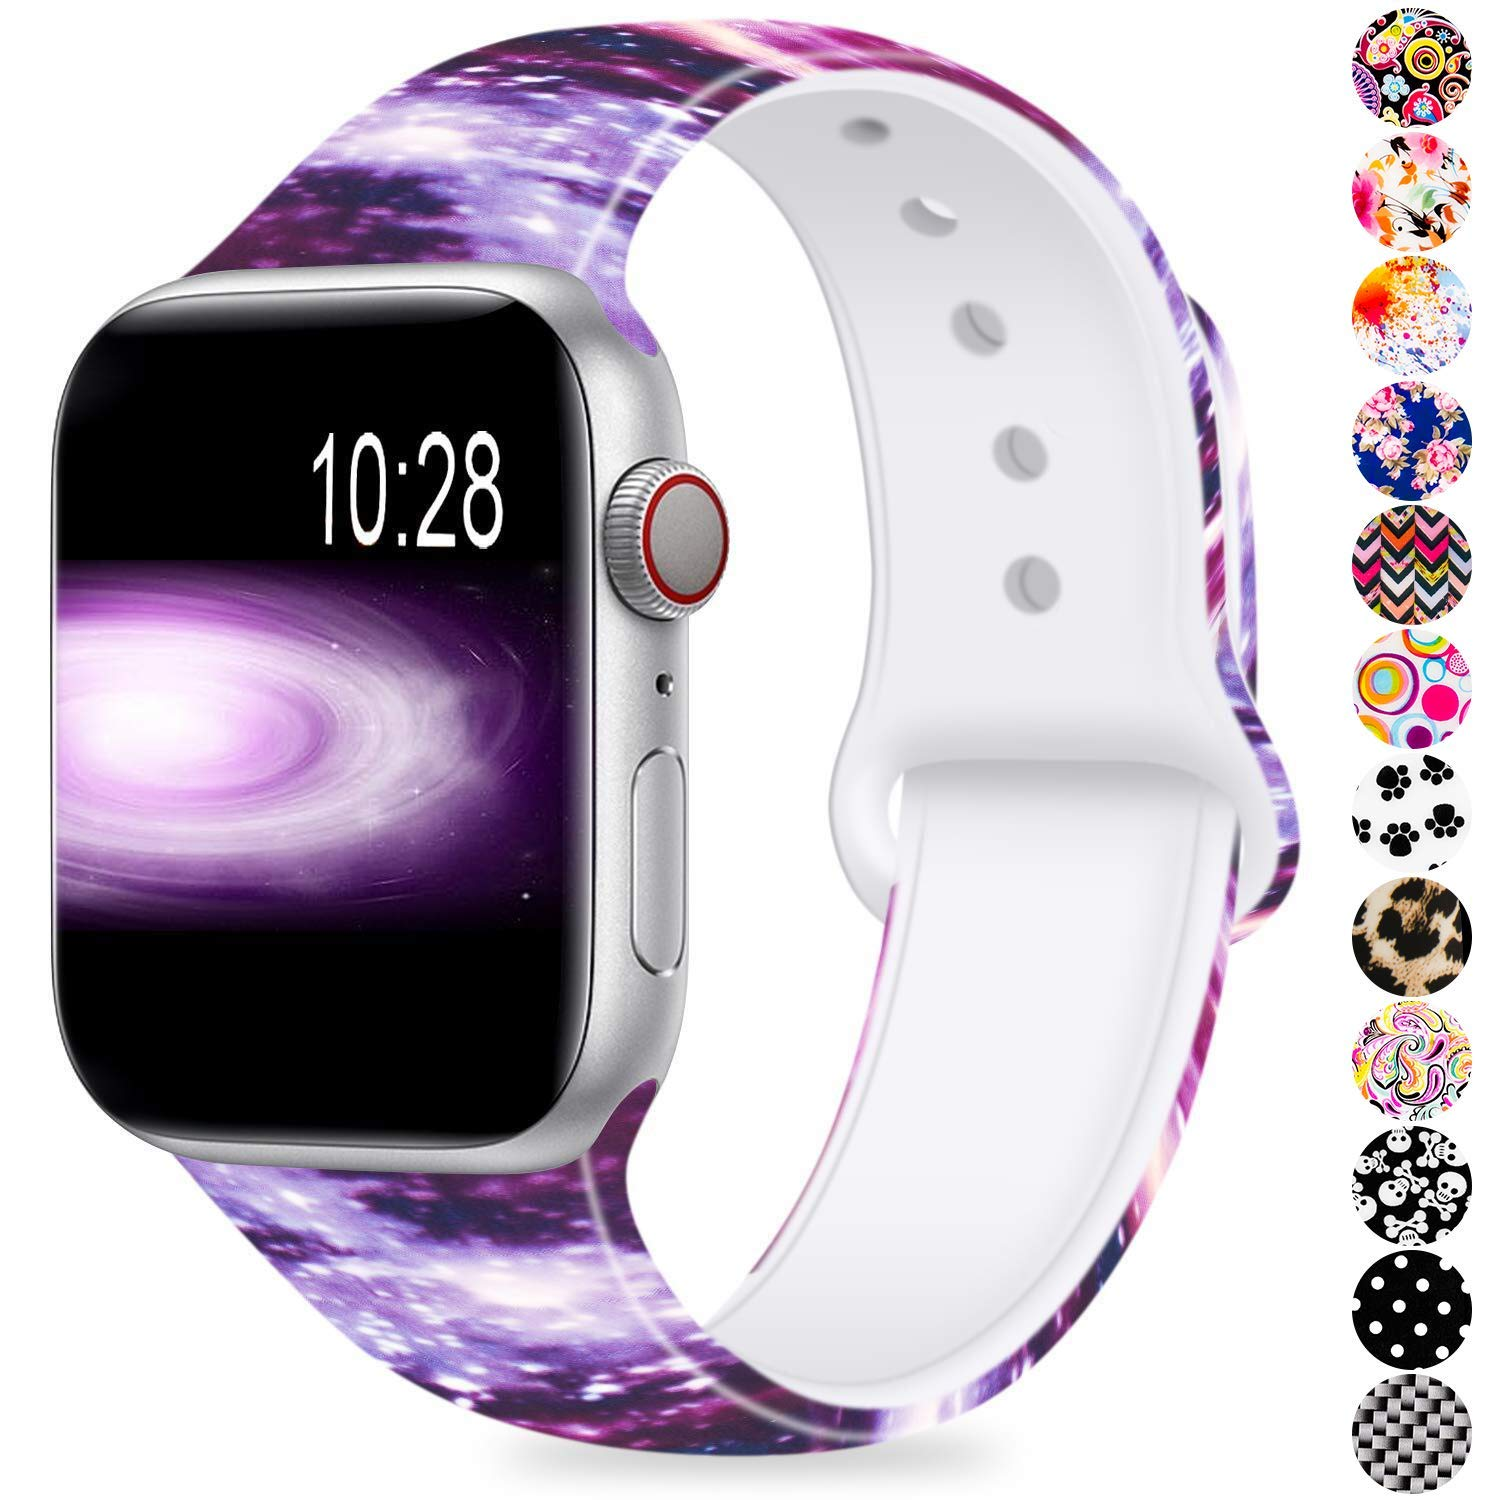 Humenn Compatible with Apple Watch Band 38mm 40mm 42mm 44mm,Soft Silicone Fadeless Pattern Printed Replacement Bands for iWatch Series 1,2,3,4